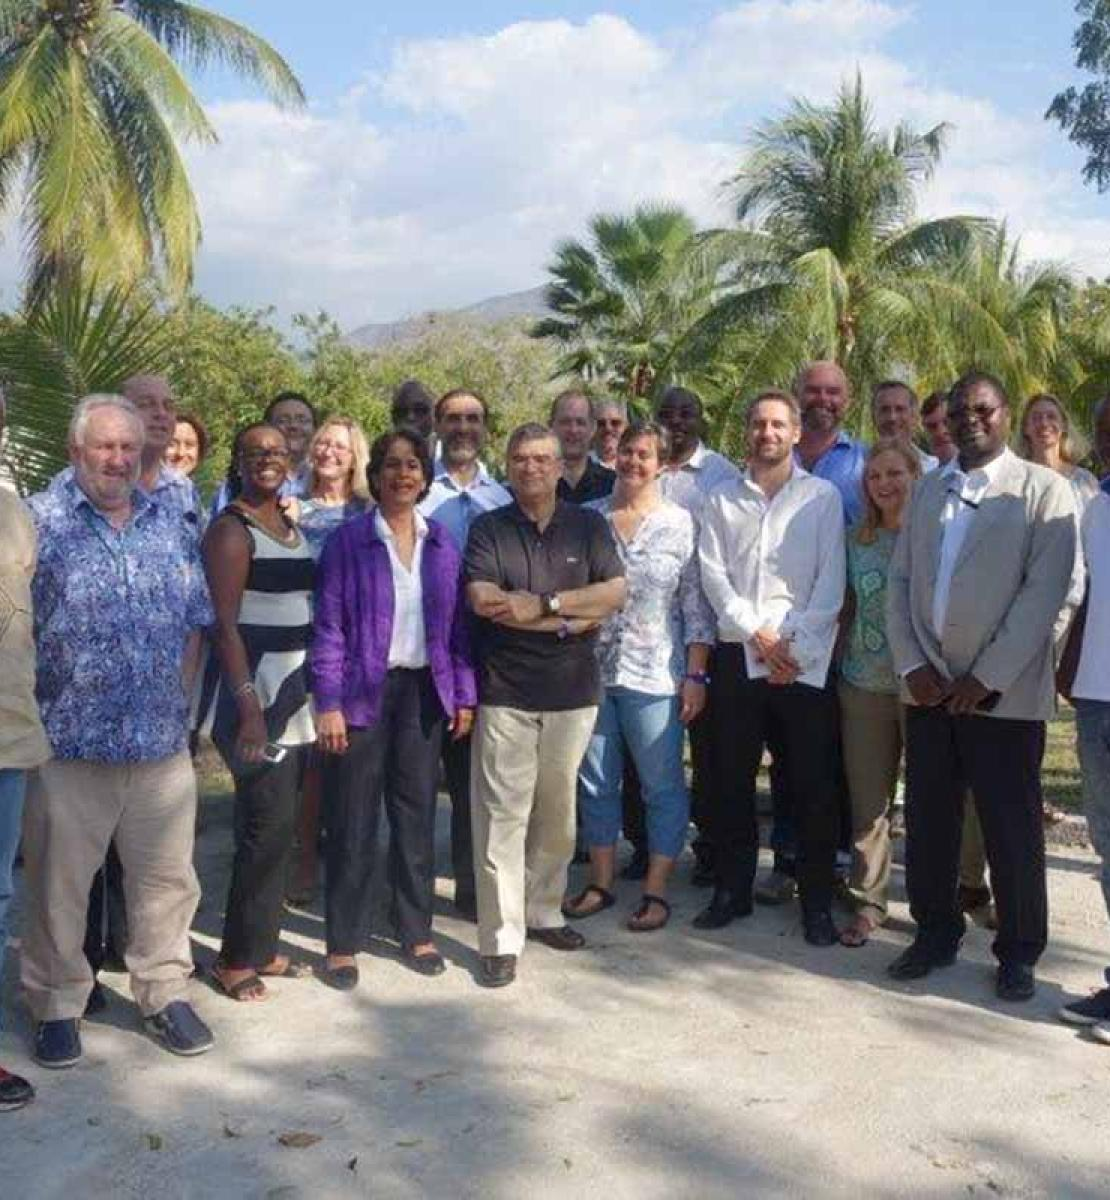 A story of many transitions: the UN in Haiti as it evolves in 2016